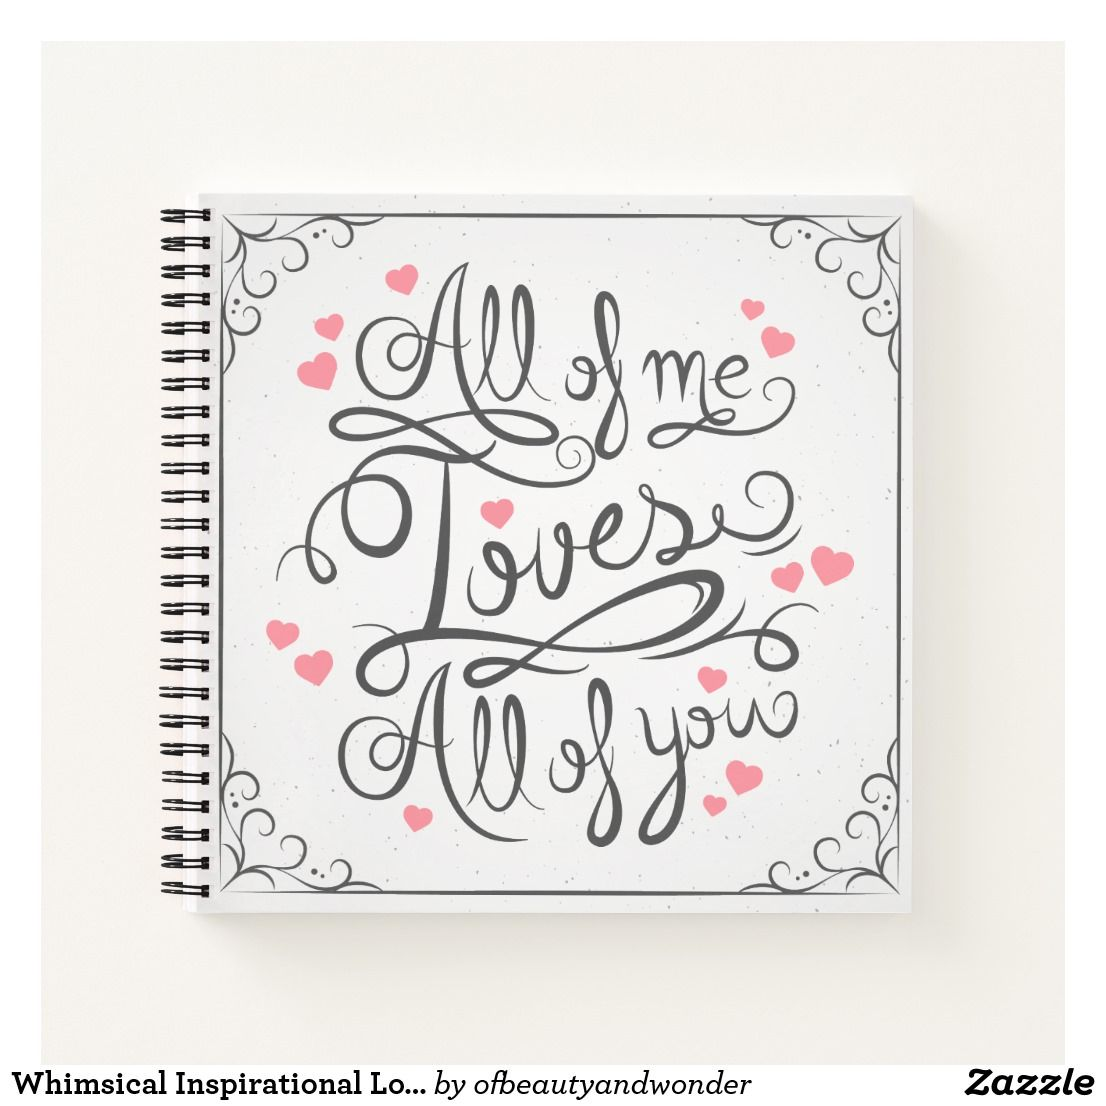 Whimsical Inspirational Love Quote Guestbook Notebook ...